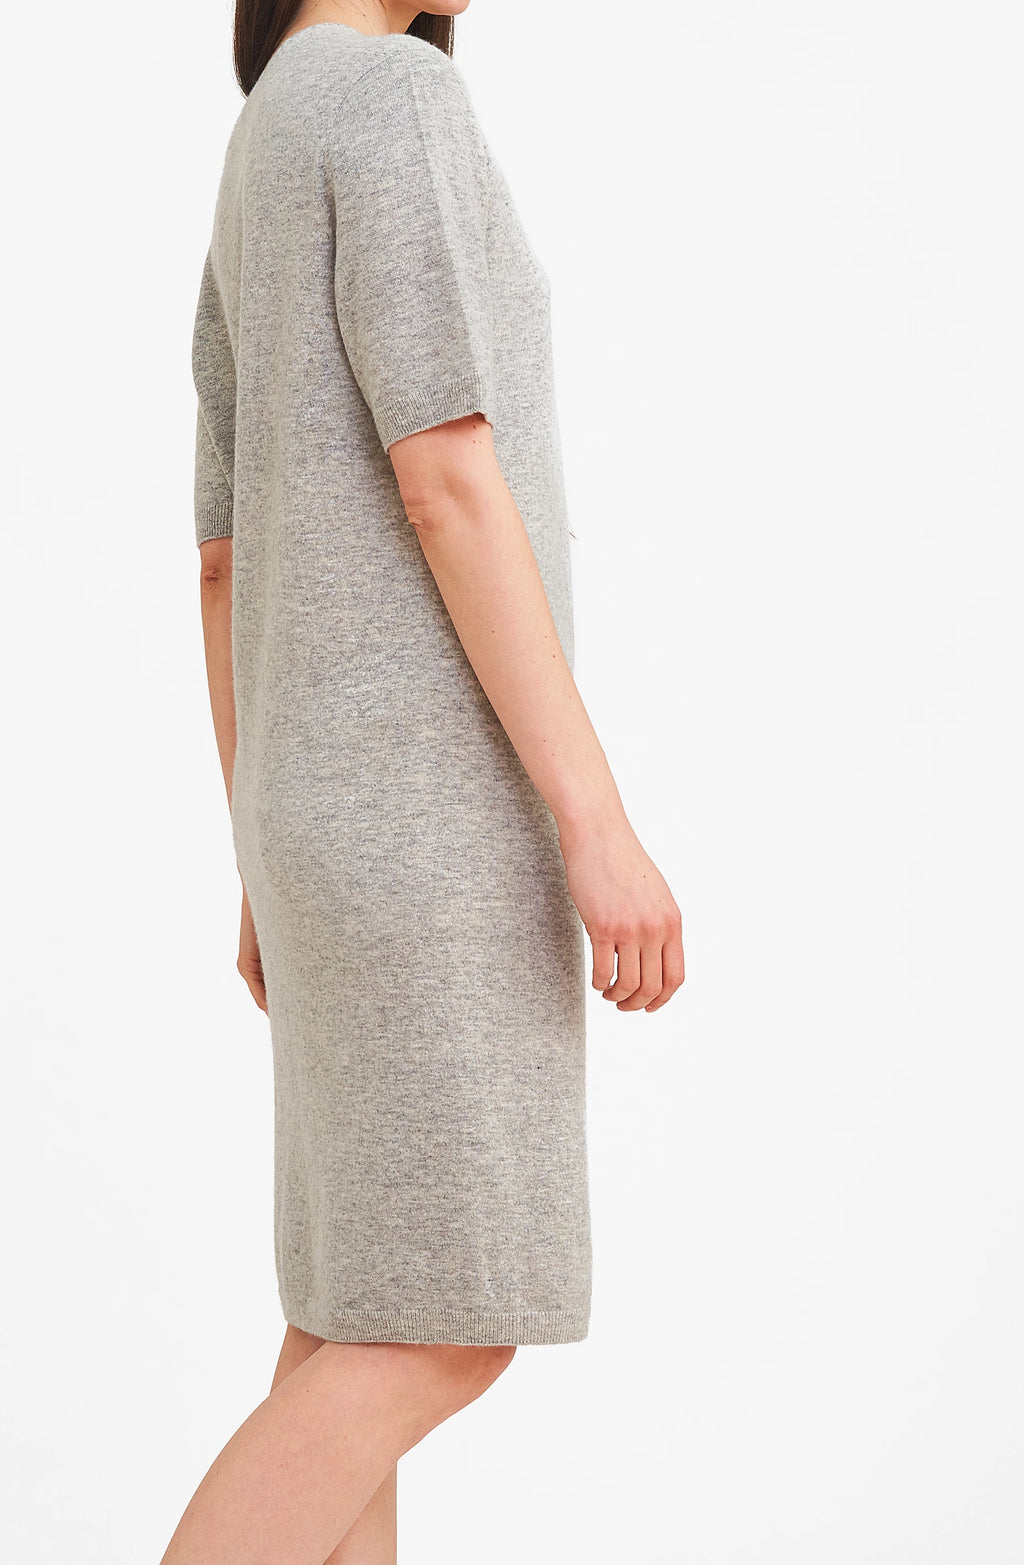 Simply Class Sweater Dress - Grey